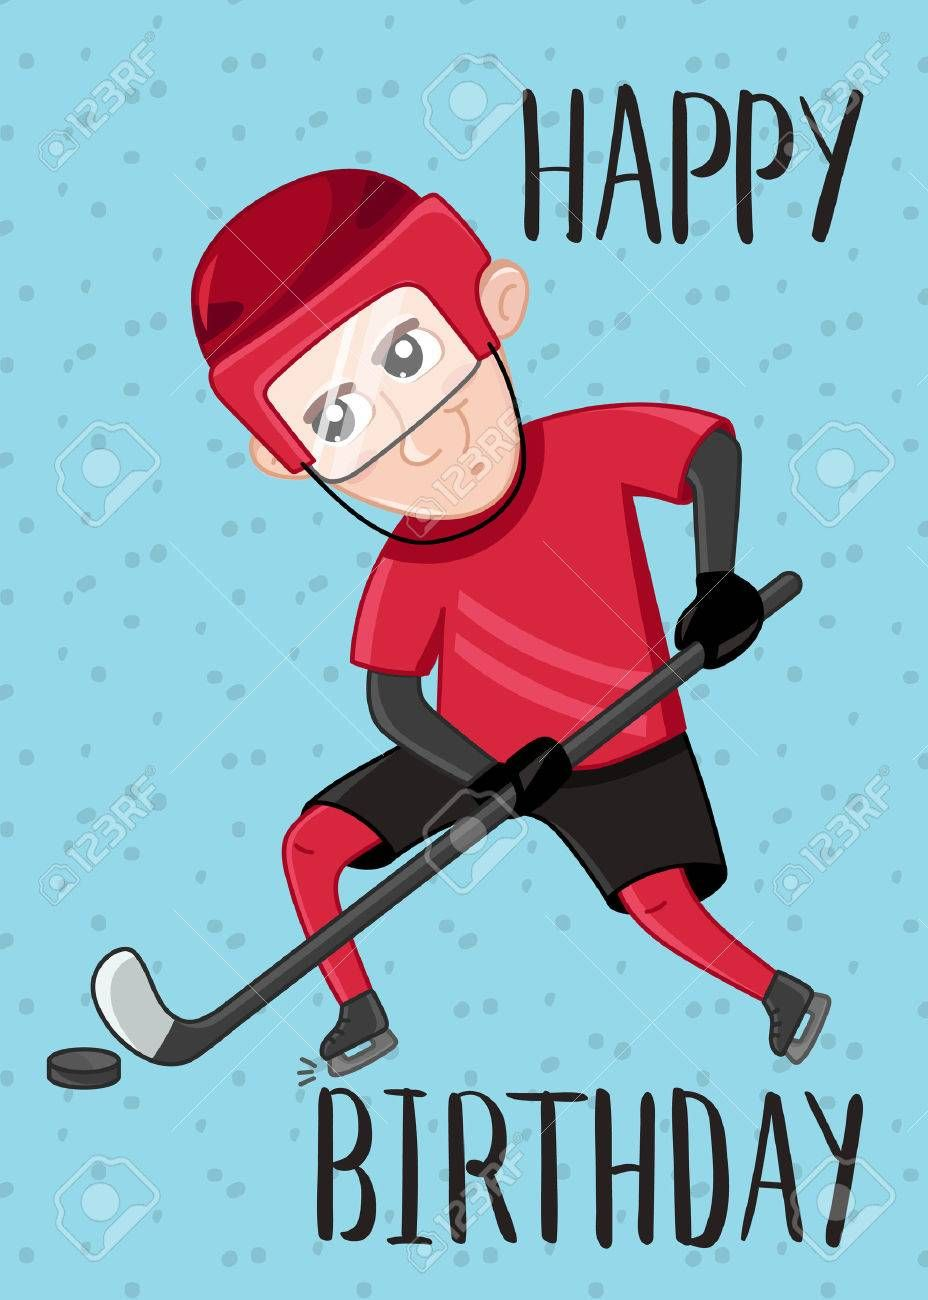 Related image Happy birthday kids, Kids cards, Ice